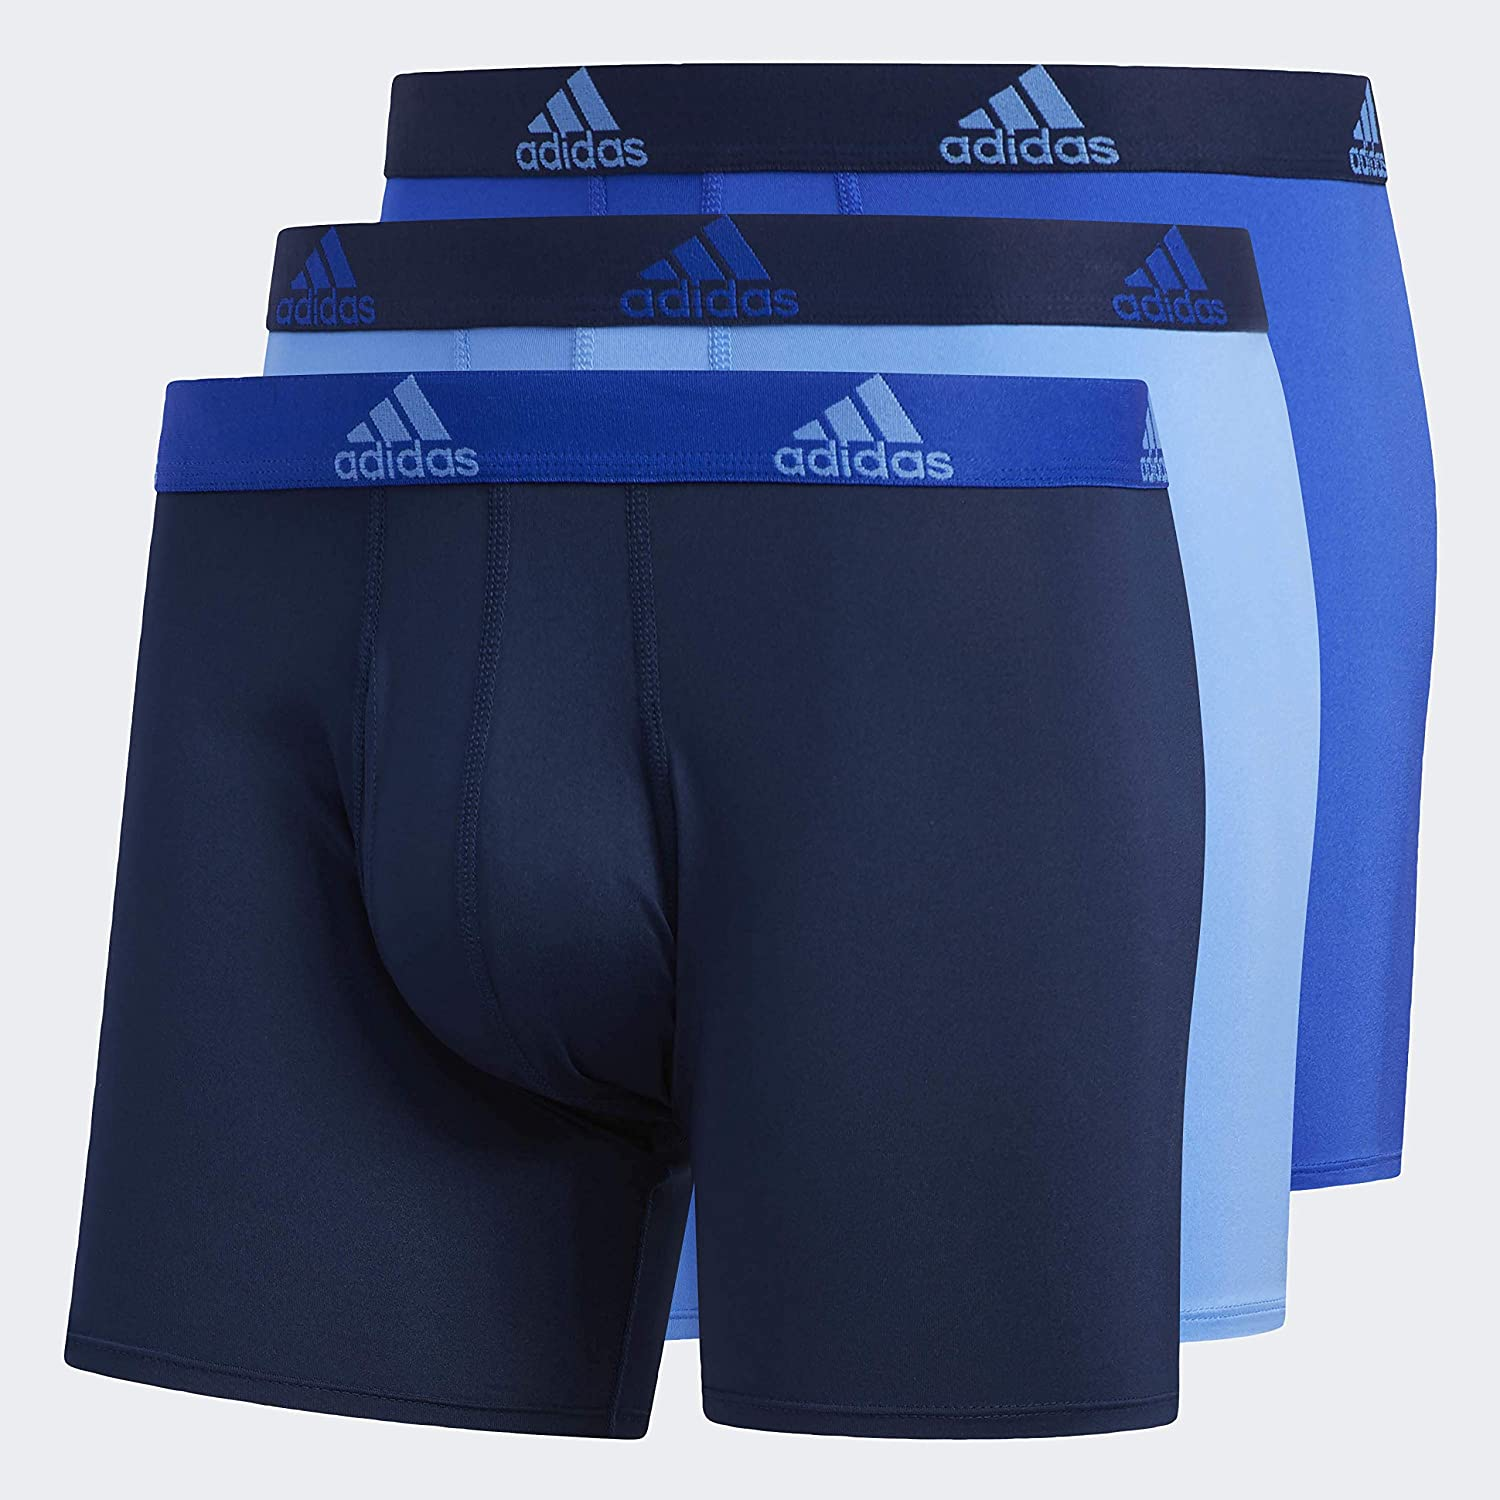 adidas Men's Performance Boxer Brief Underwear (3-Pack)